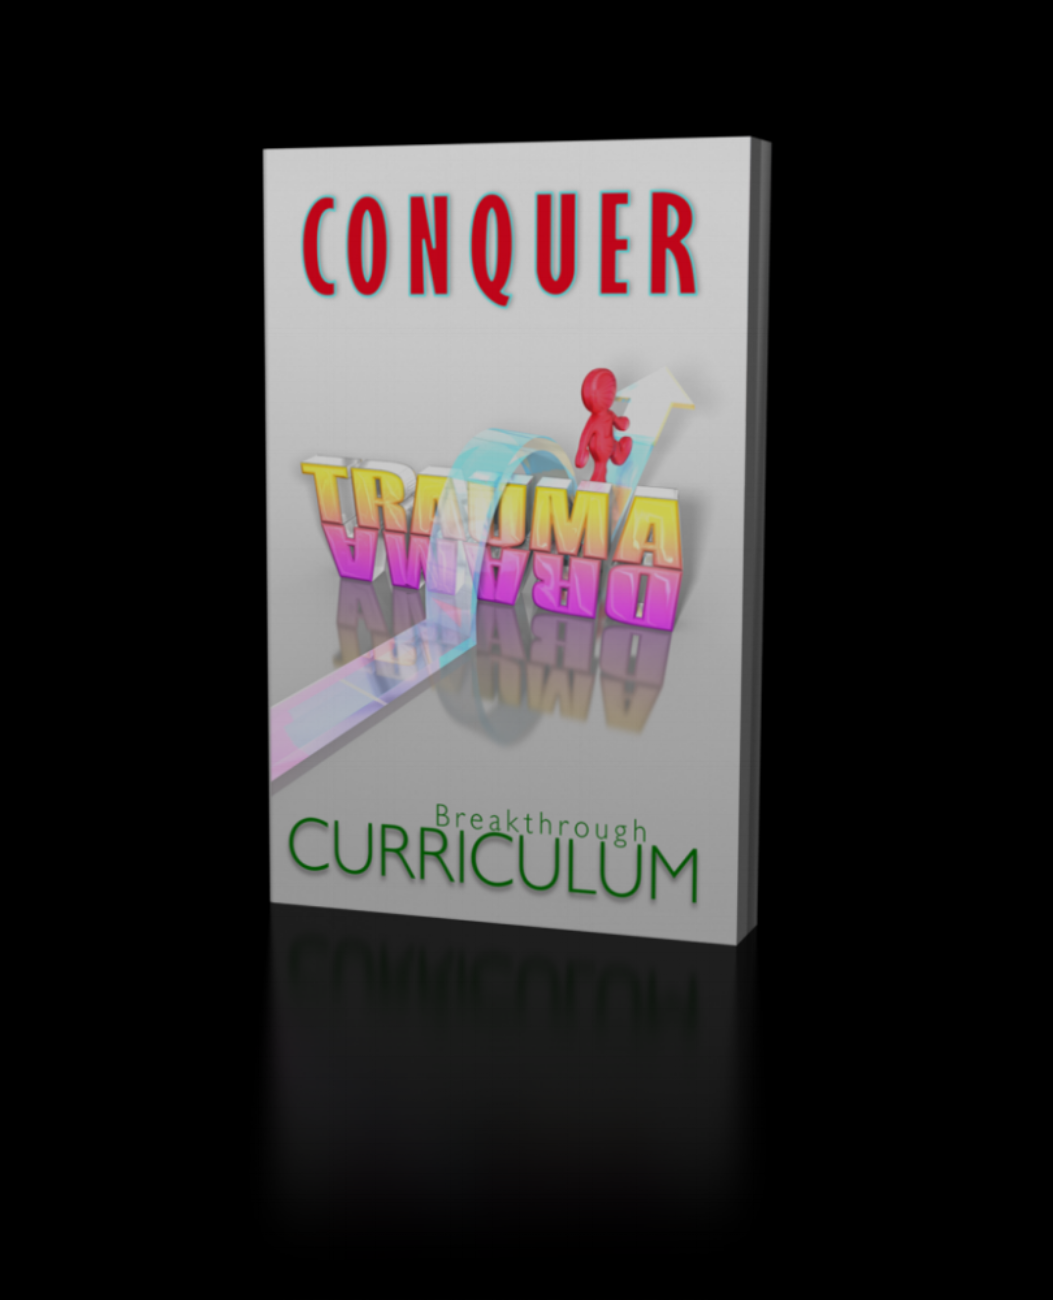 Conquer Trauma Drama: Breakthrough Curriculum (141 pages) Published in 2016 and 2nd Edition 2017.